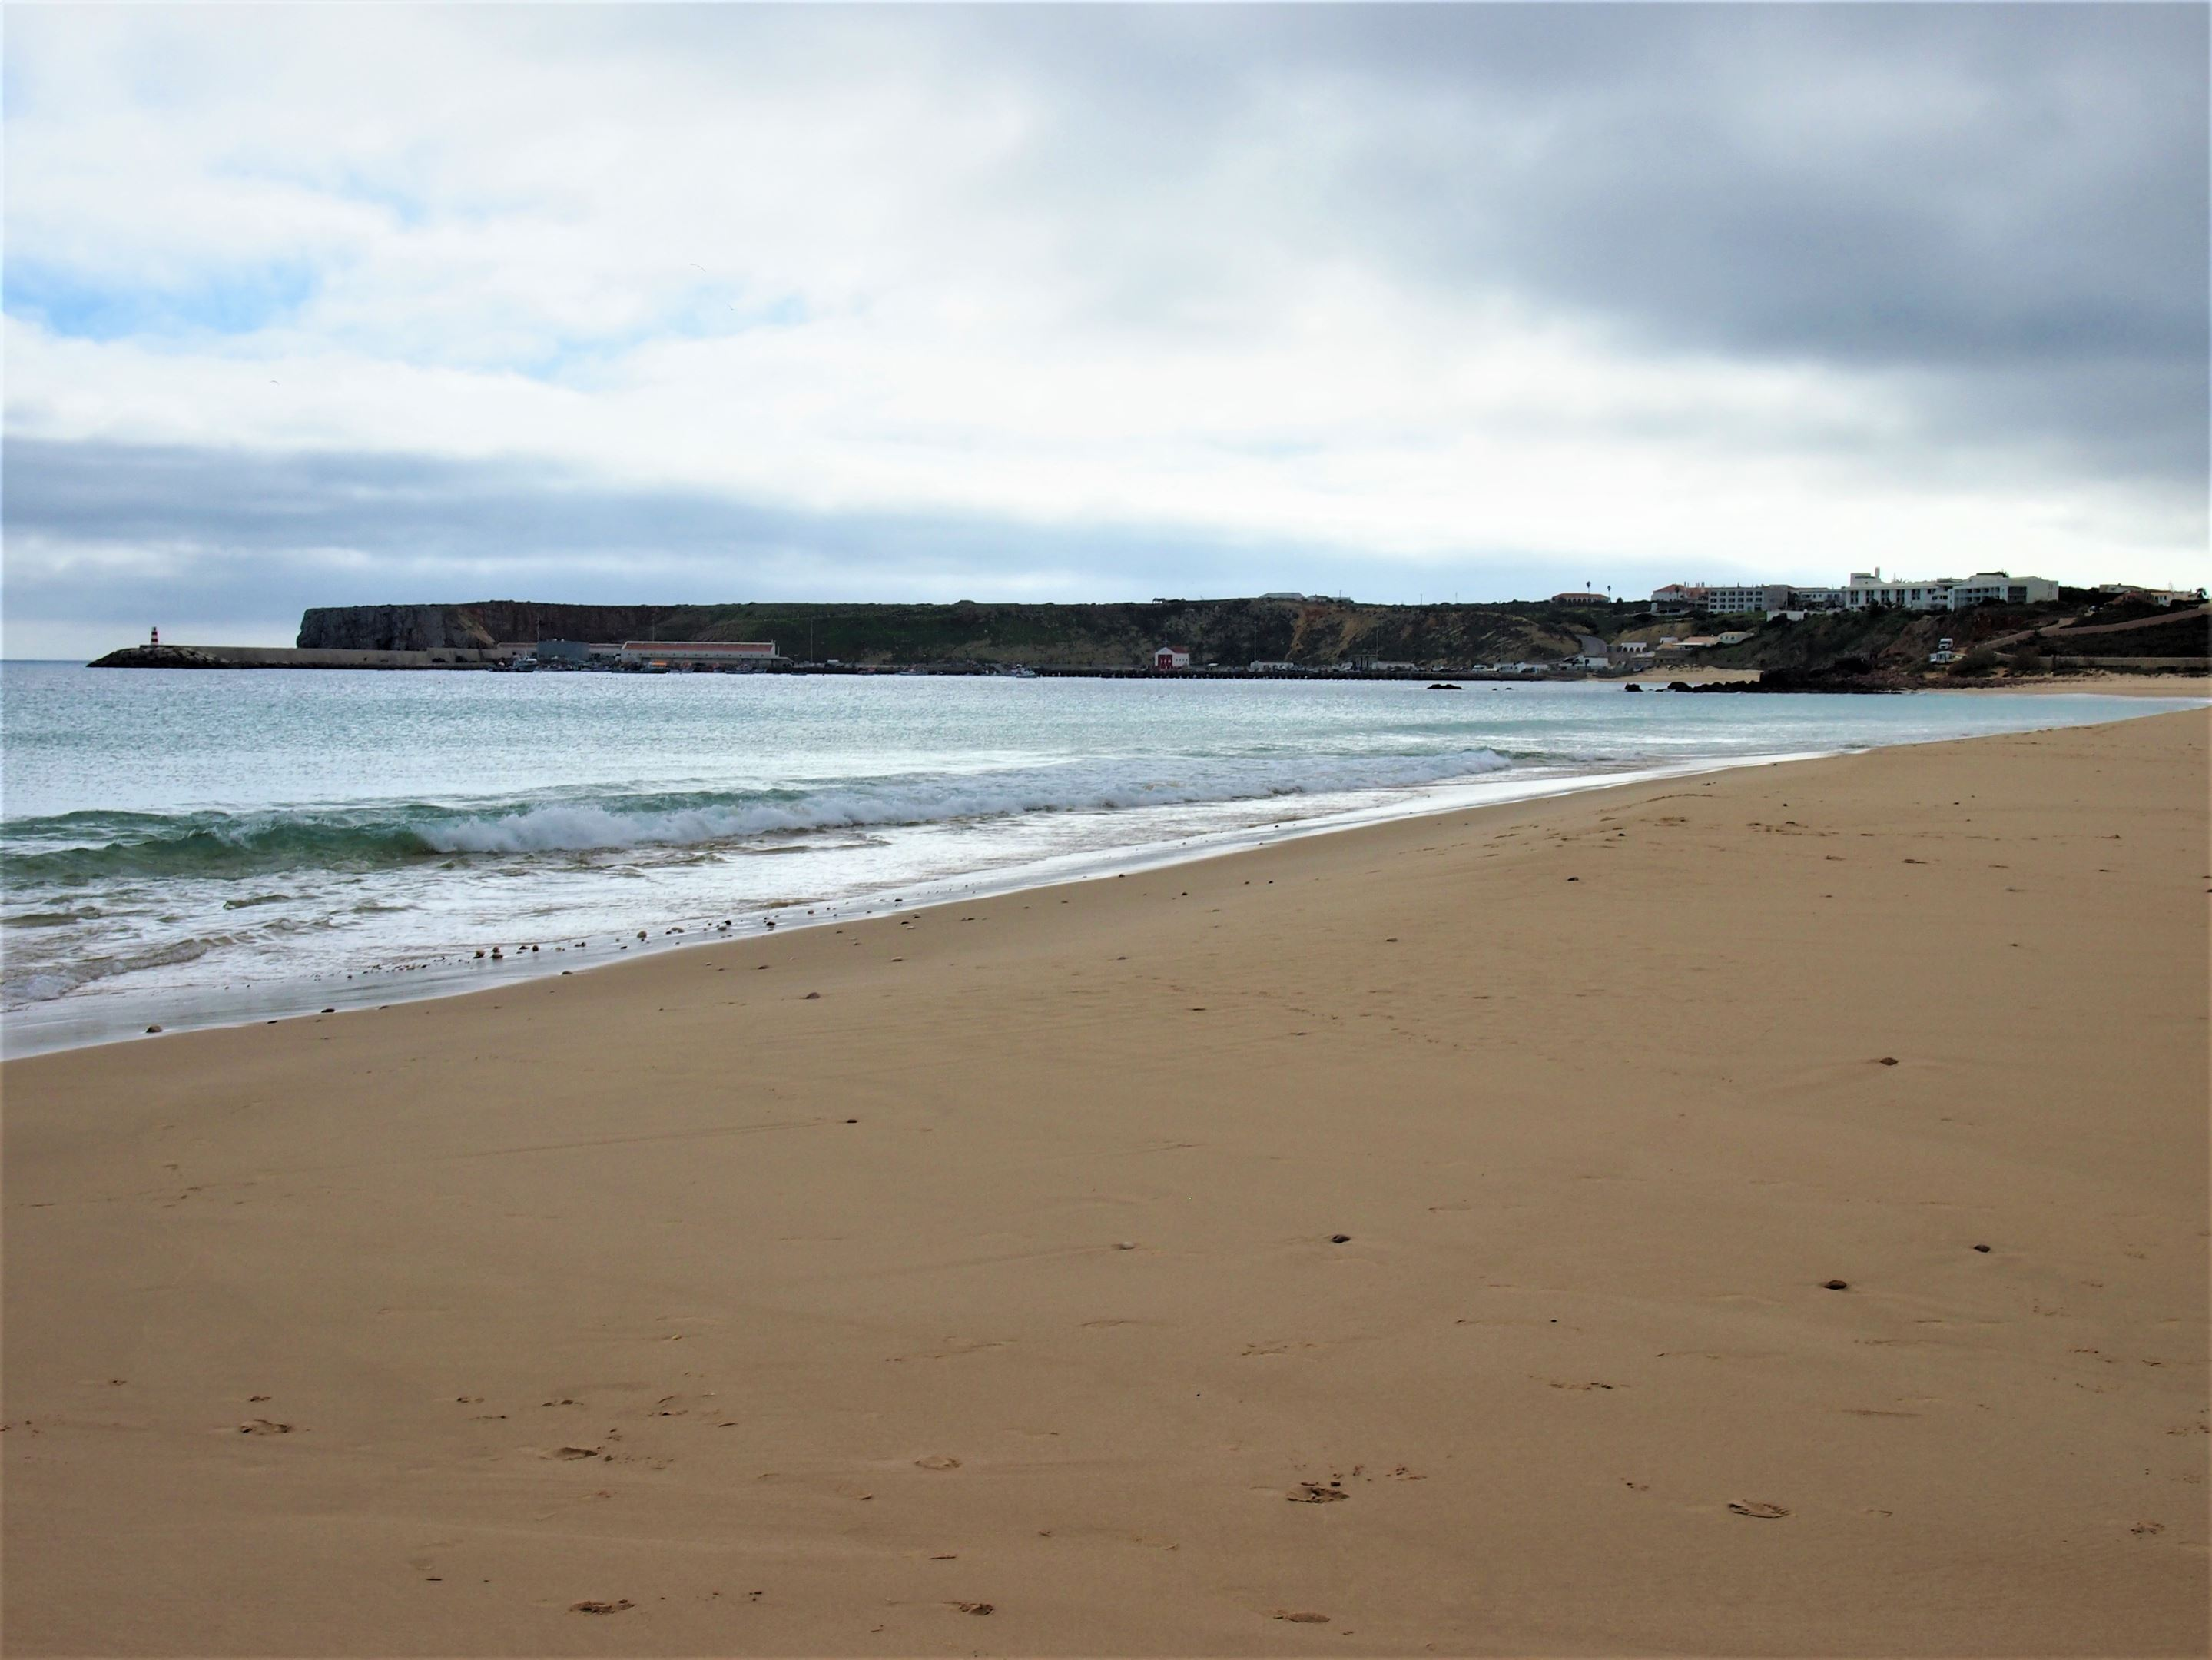 From the short drive from Praia da Ingrina to Praia do Martinhal, the weather changed rapidly.